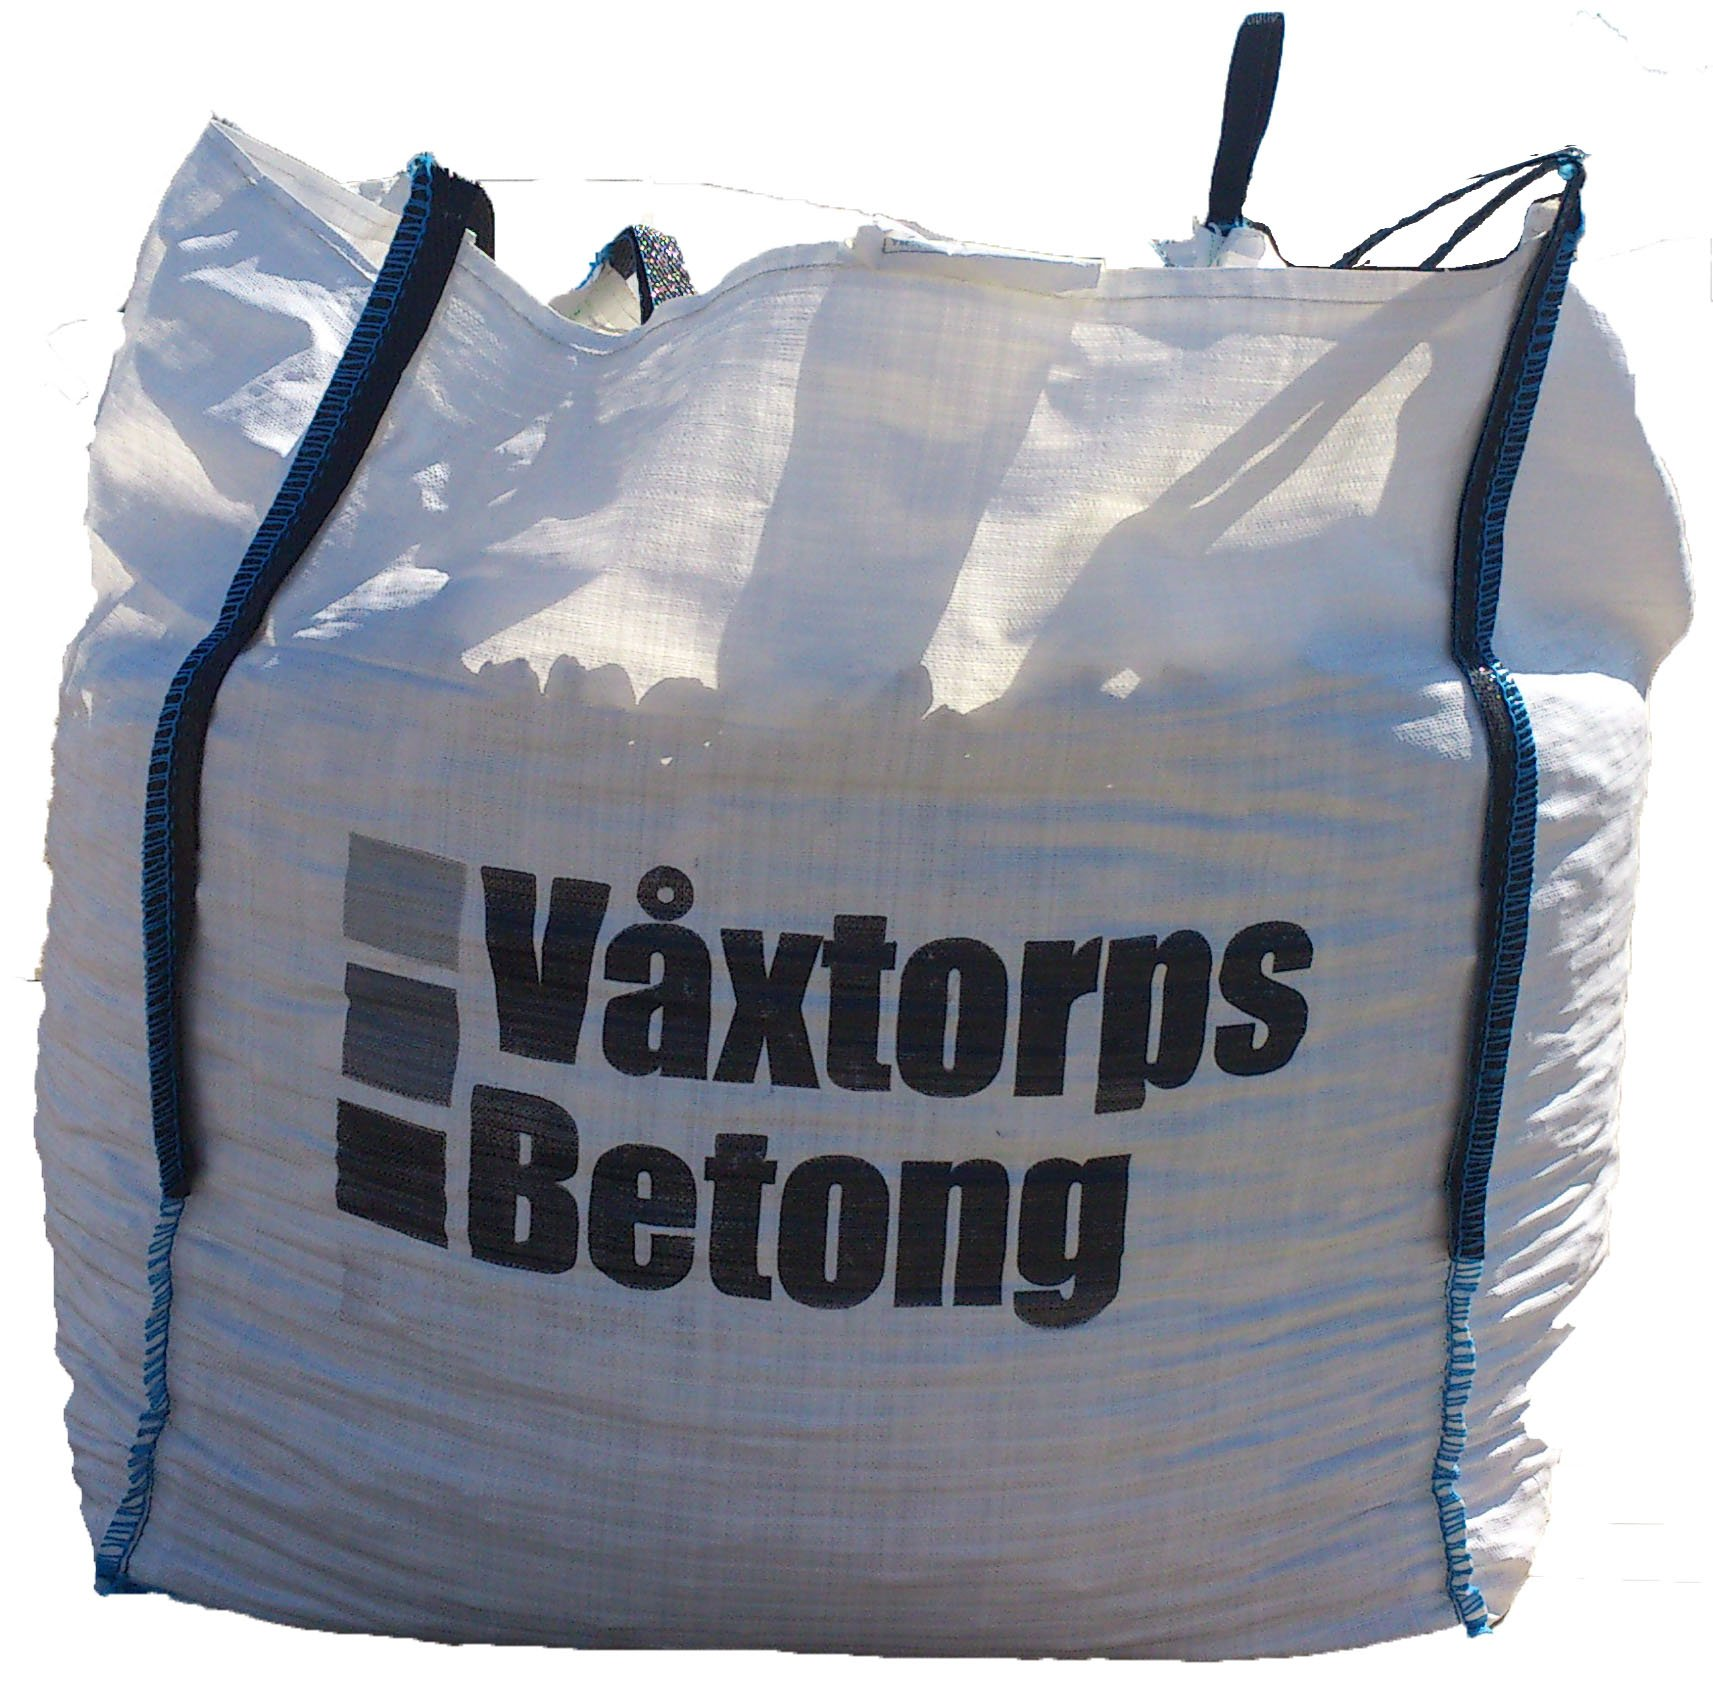 Big bag Våxtorps betong